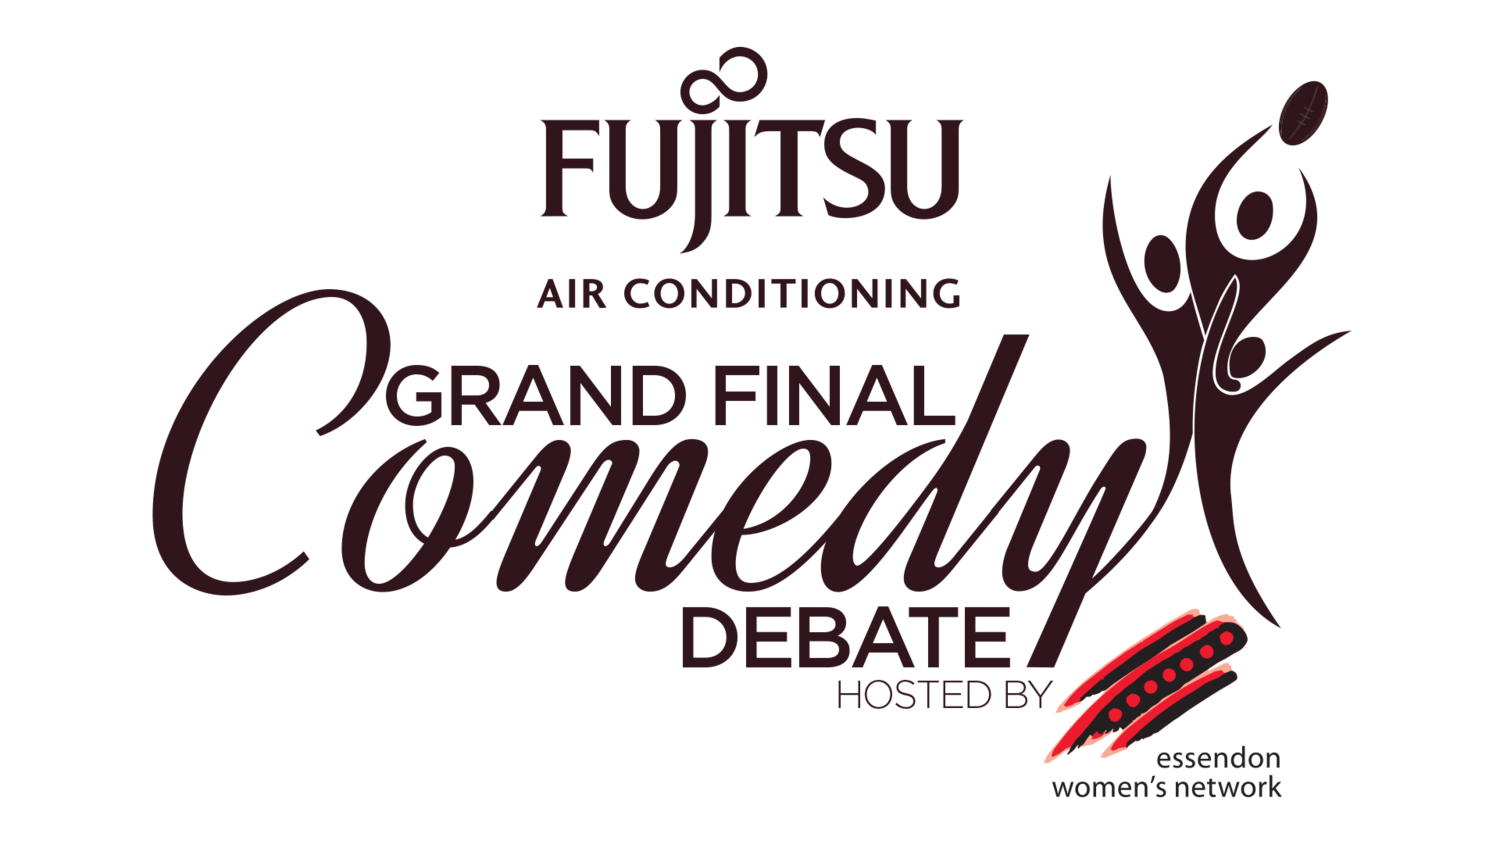 Fujitsu General Grand Final Comedy Debate